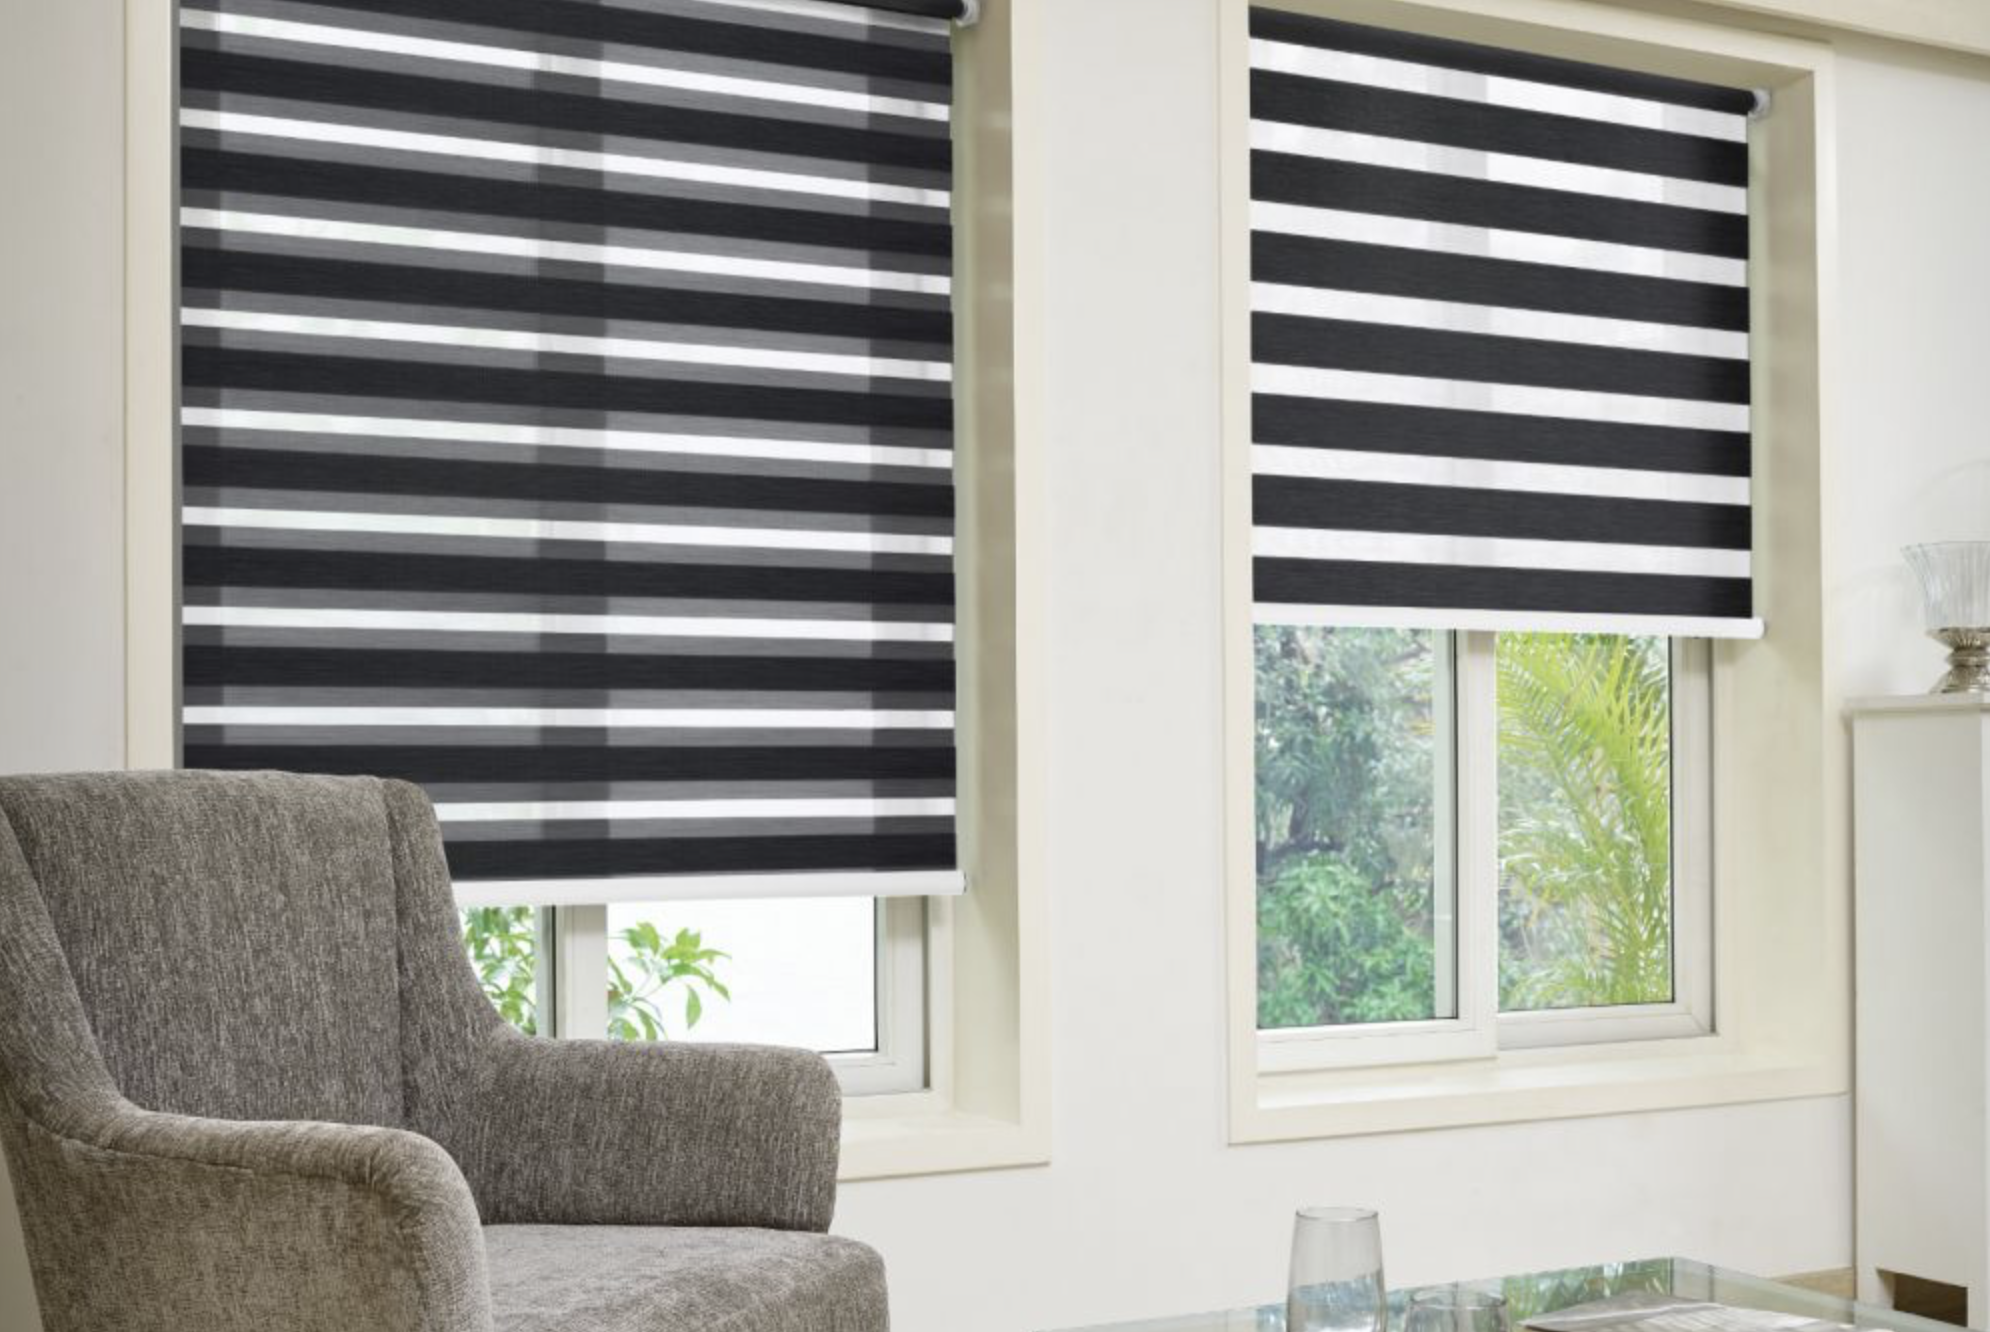 Night and Day blinds are a fairly new product for window treatments